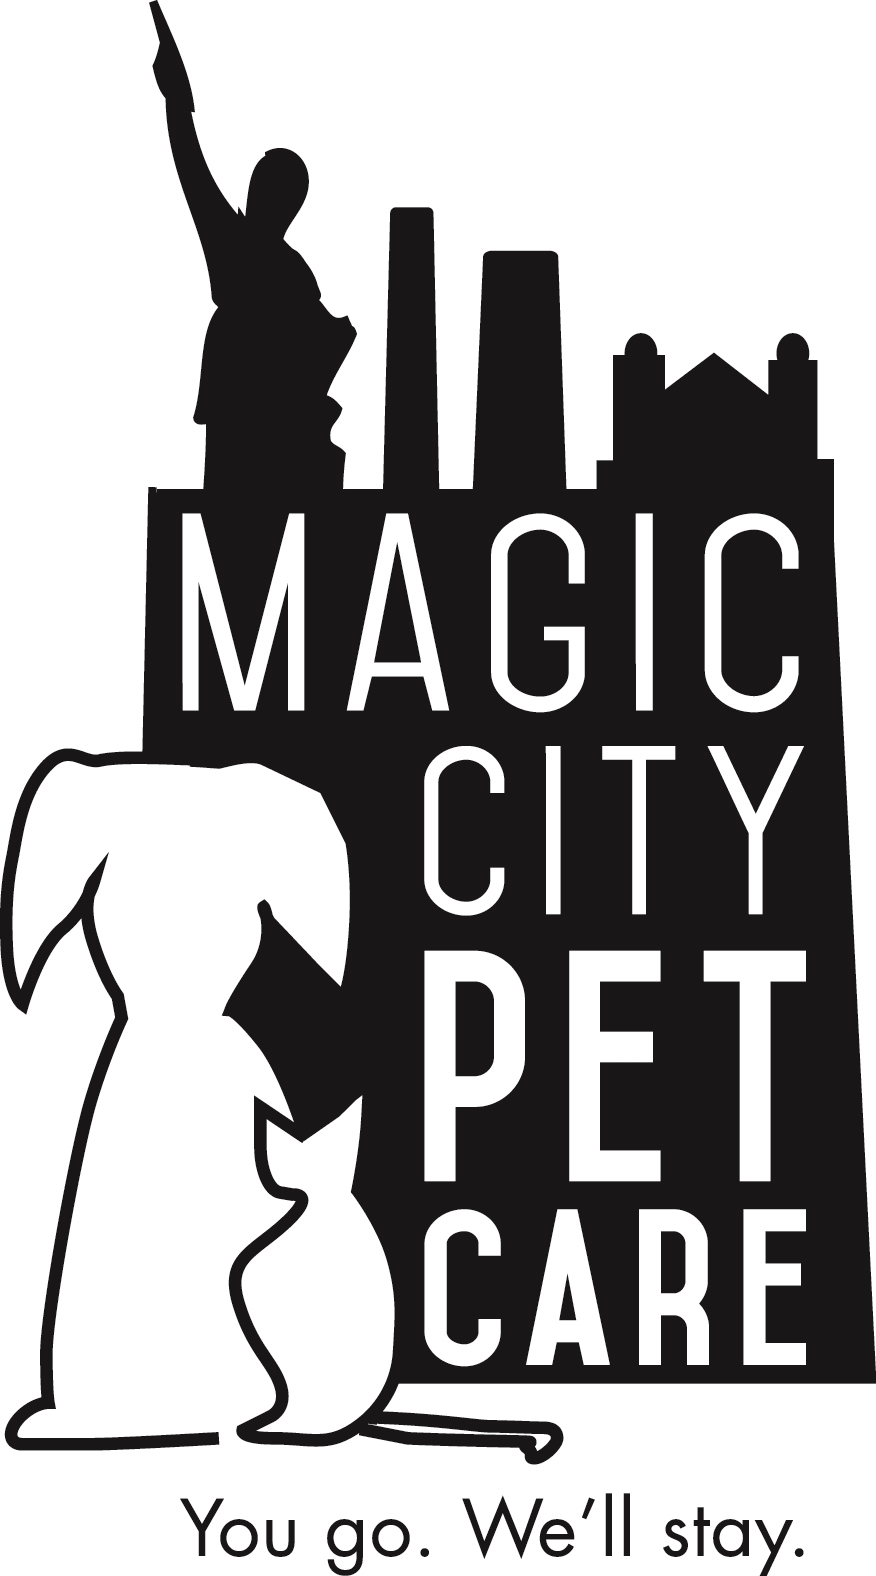 Pet Sitting Birmingham Alabama